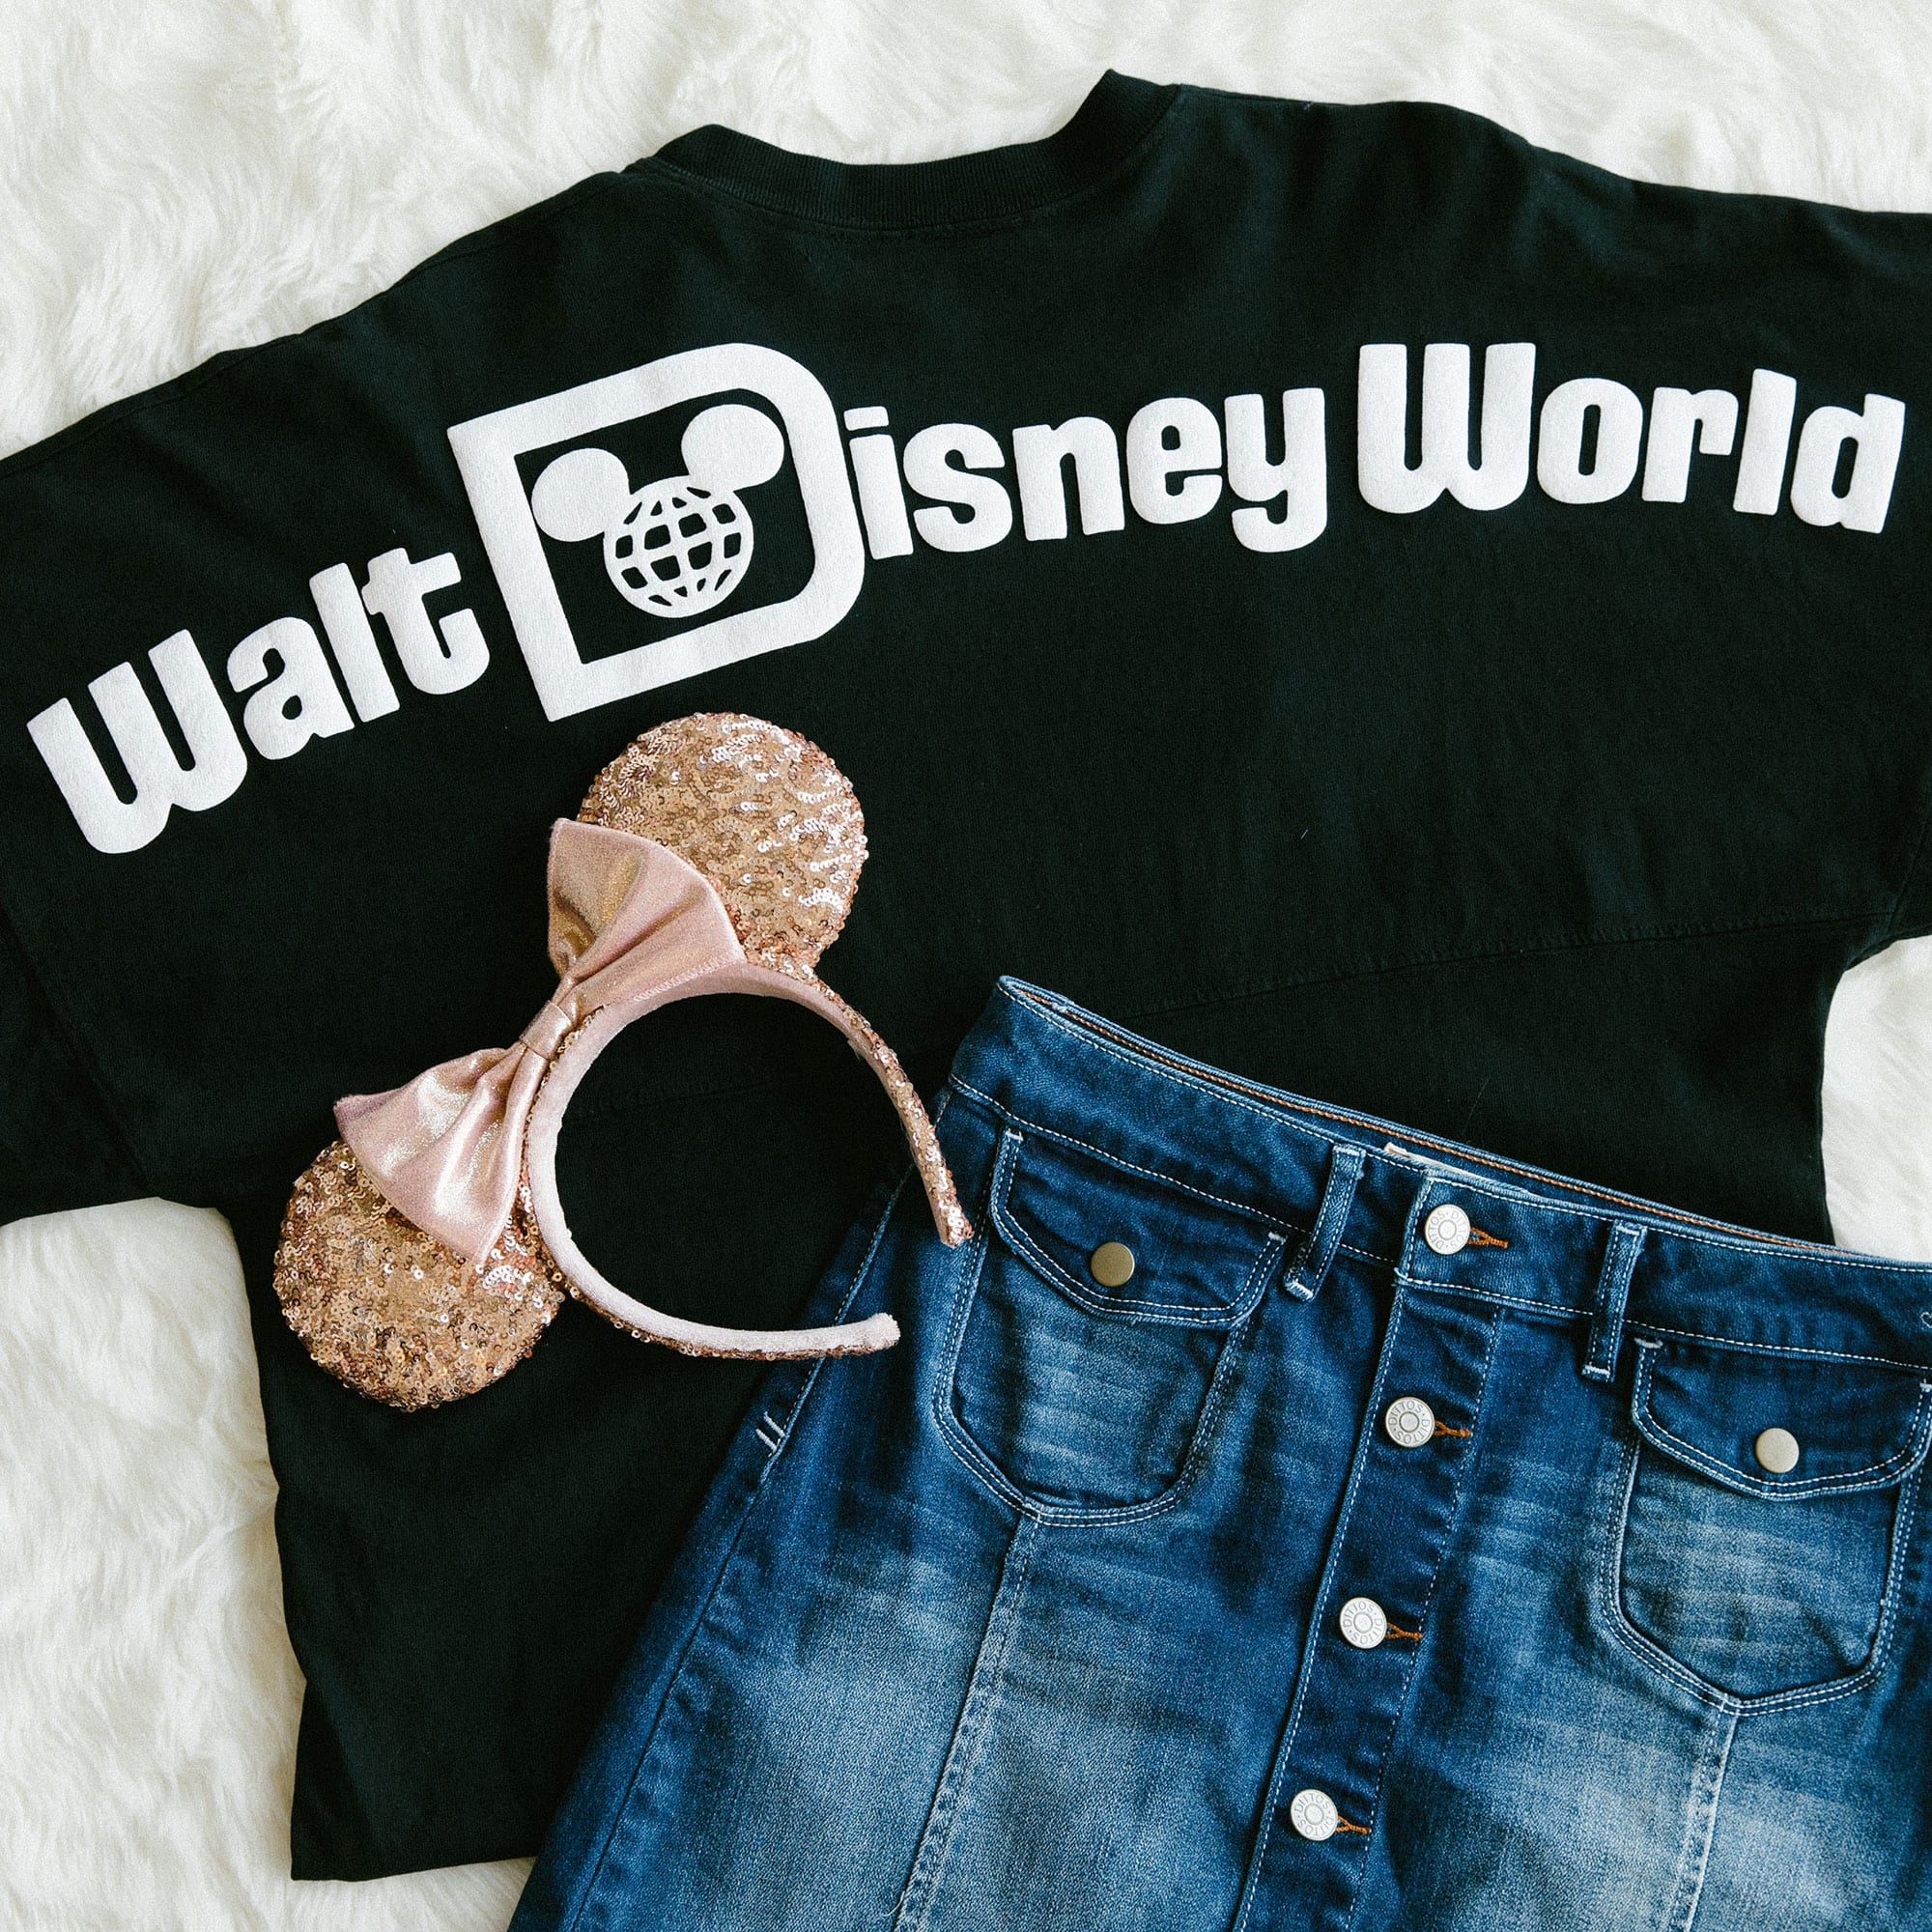 377203e53 Gear Up For Your Vacation. Browse ear hats, T-shirts and more Disney ...